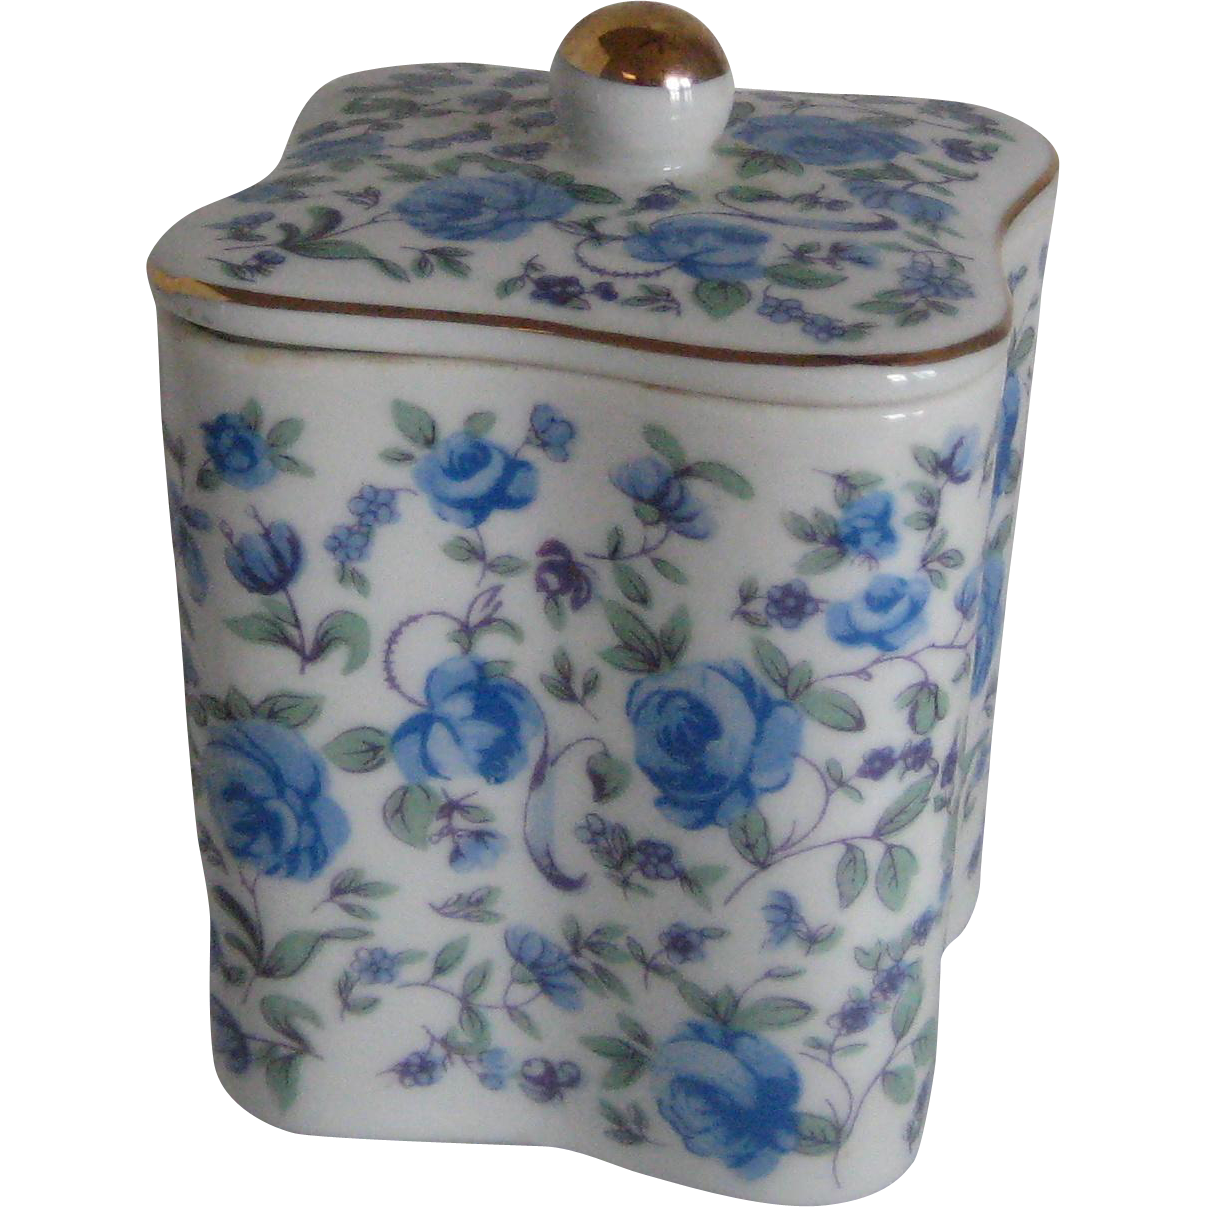 Blue Porcelain Chintz Box with Roses